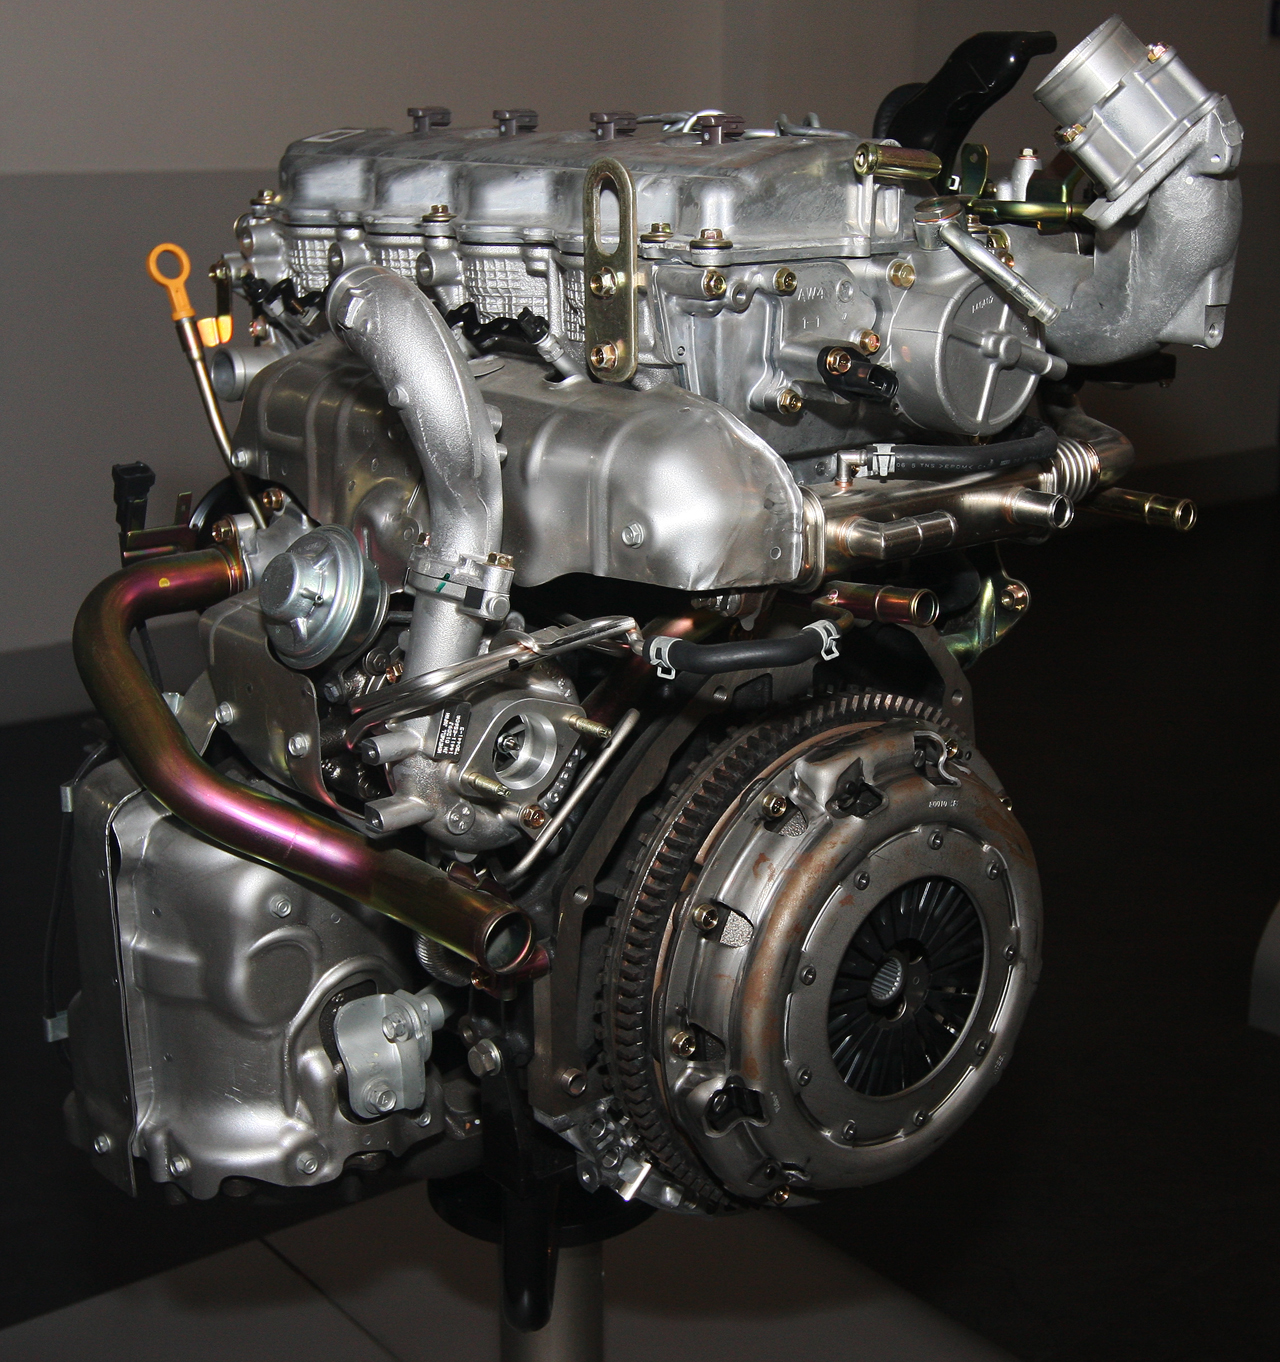 Vp44 Injection Pump >> Nissan YD engine